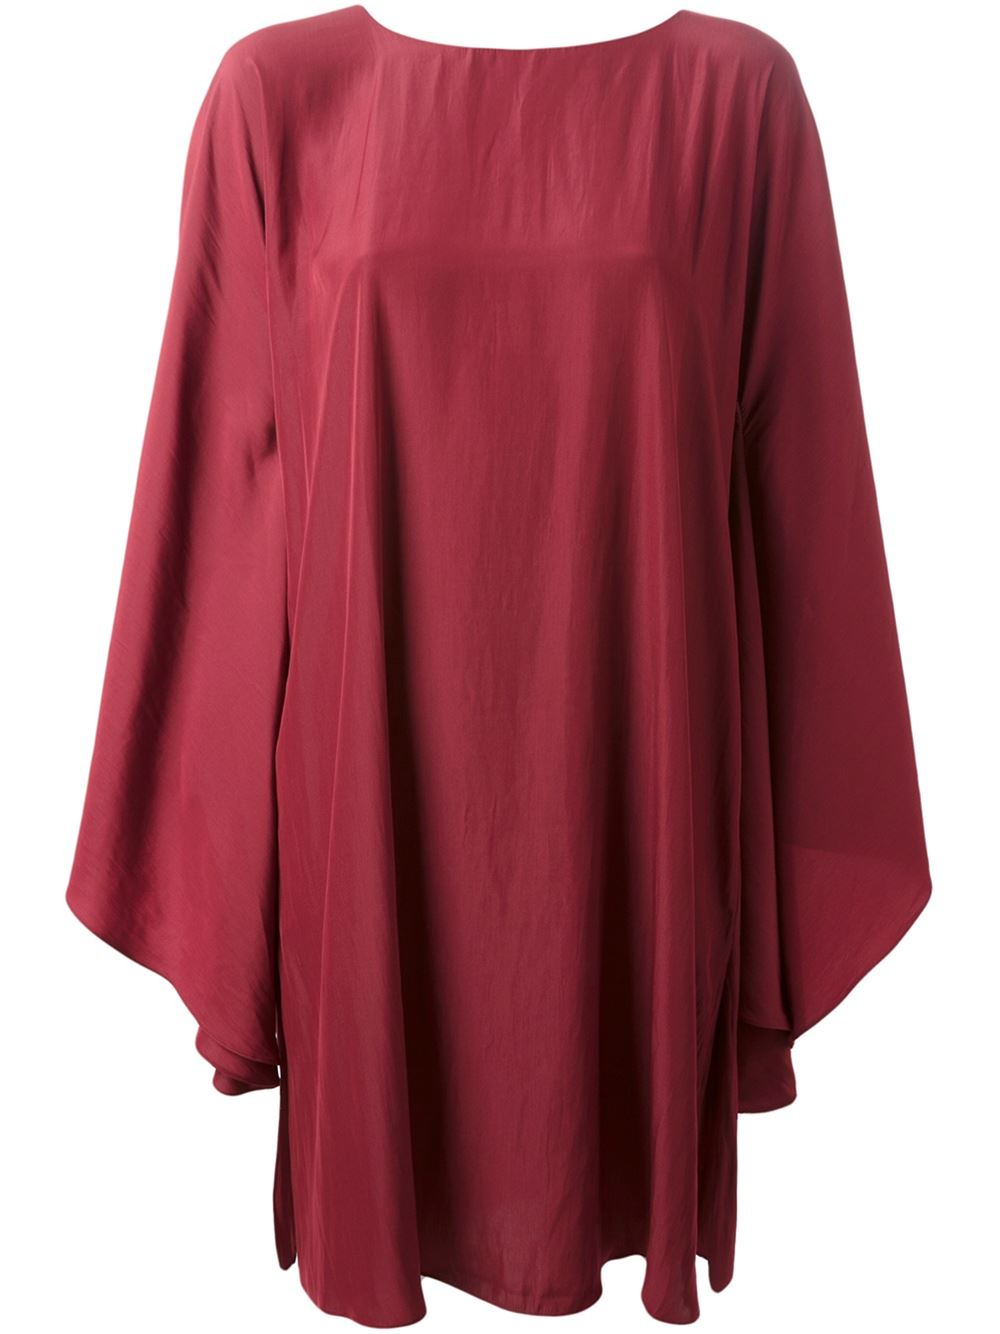 Lanvin Draped Dress in Red | Lyst